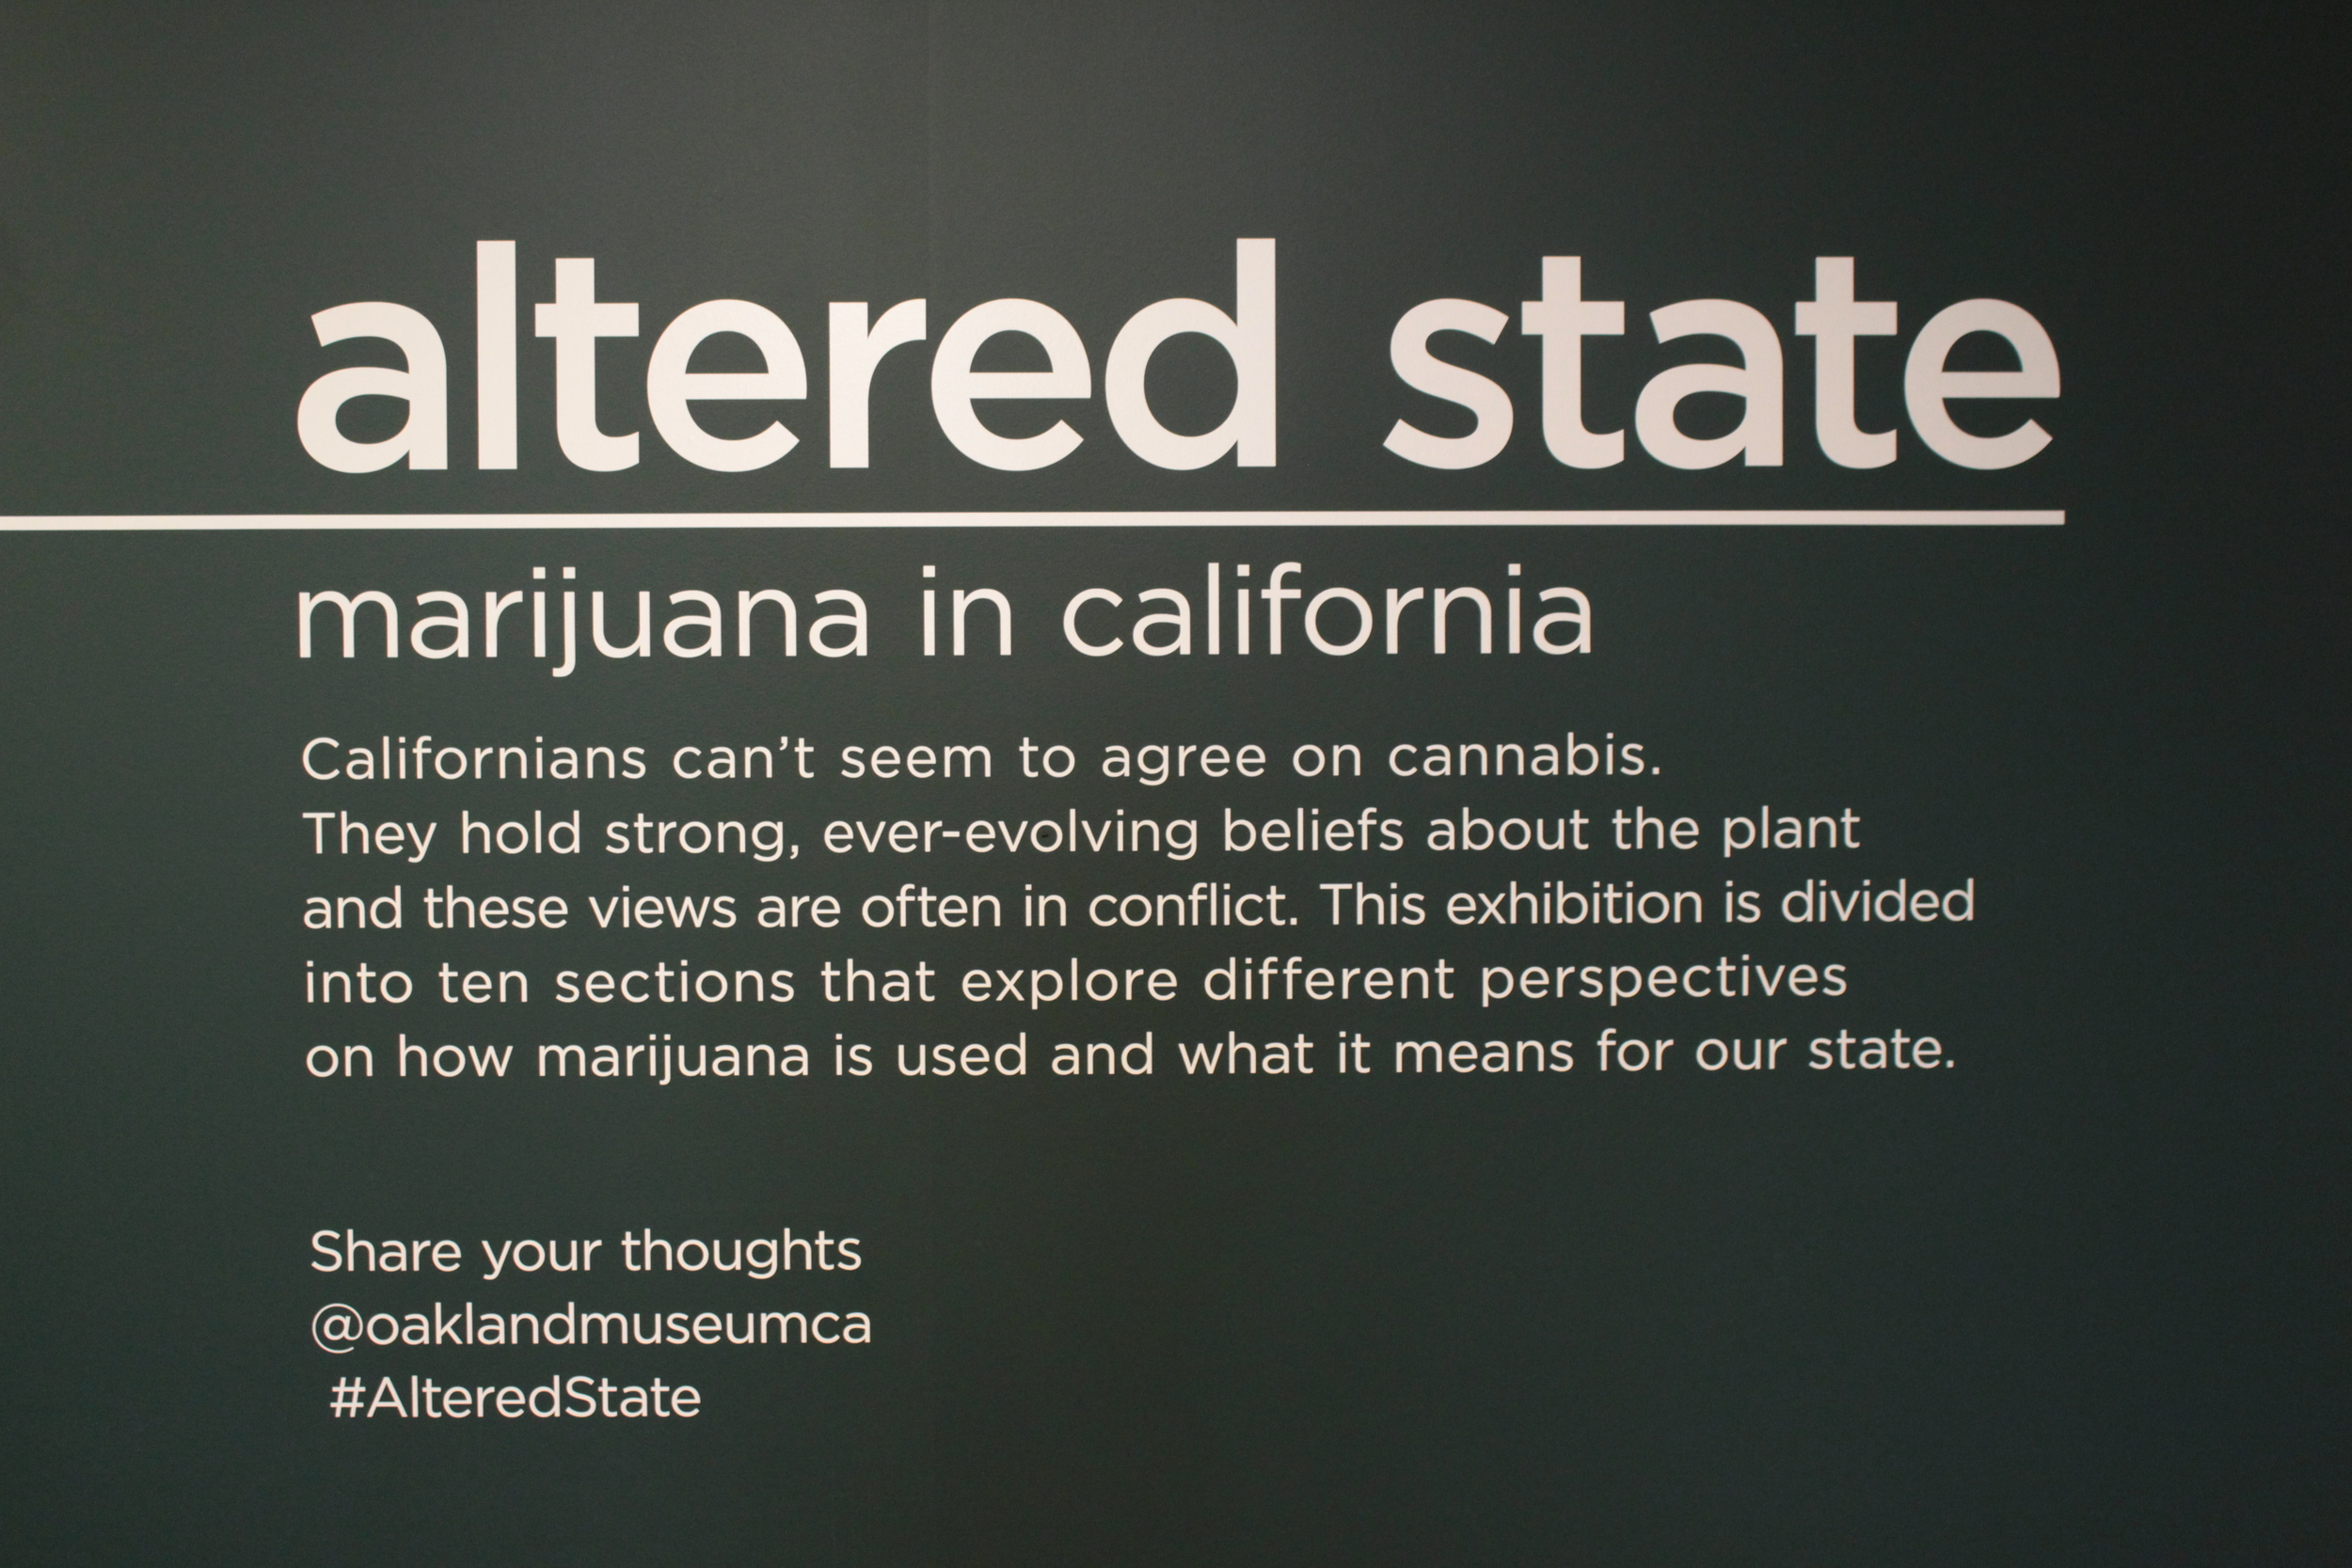 Altered State Oakland museum of california information.JPG